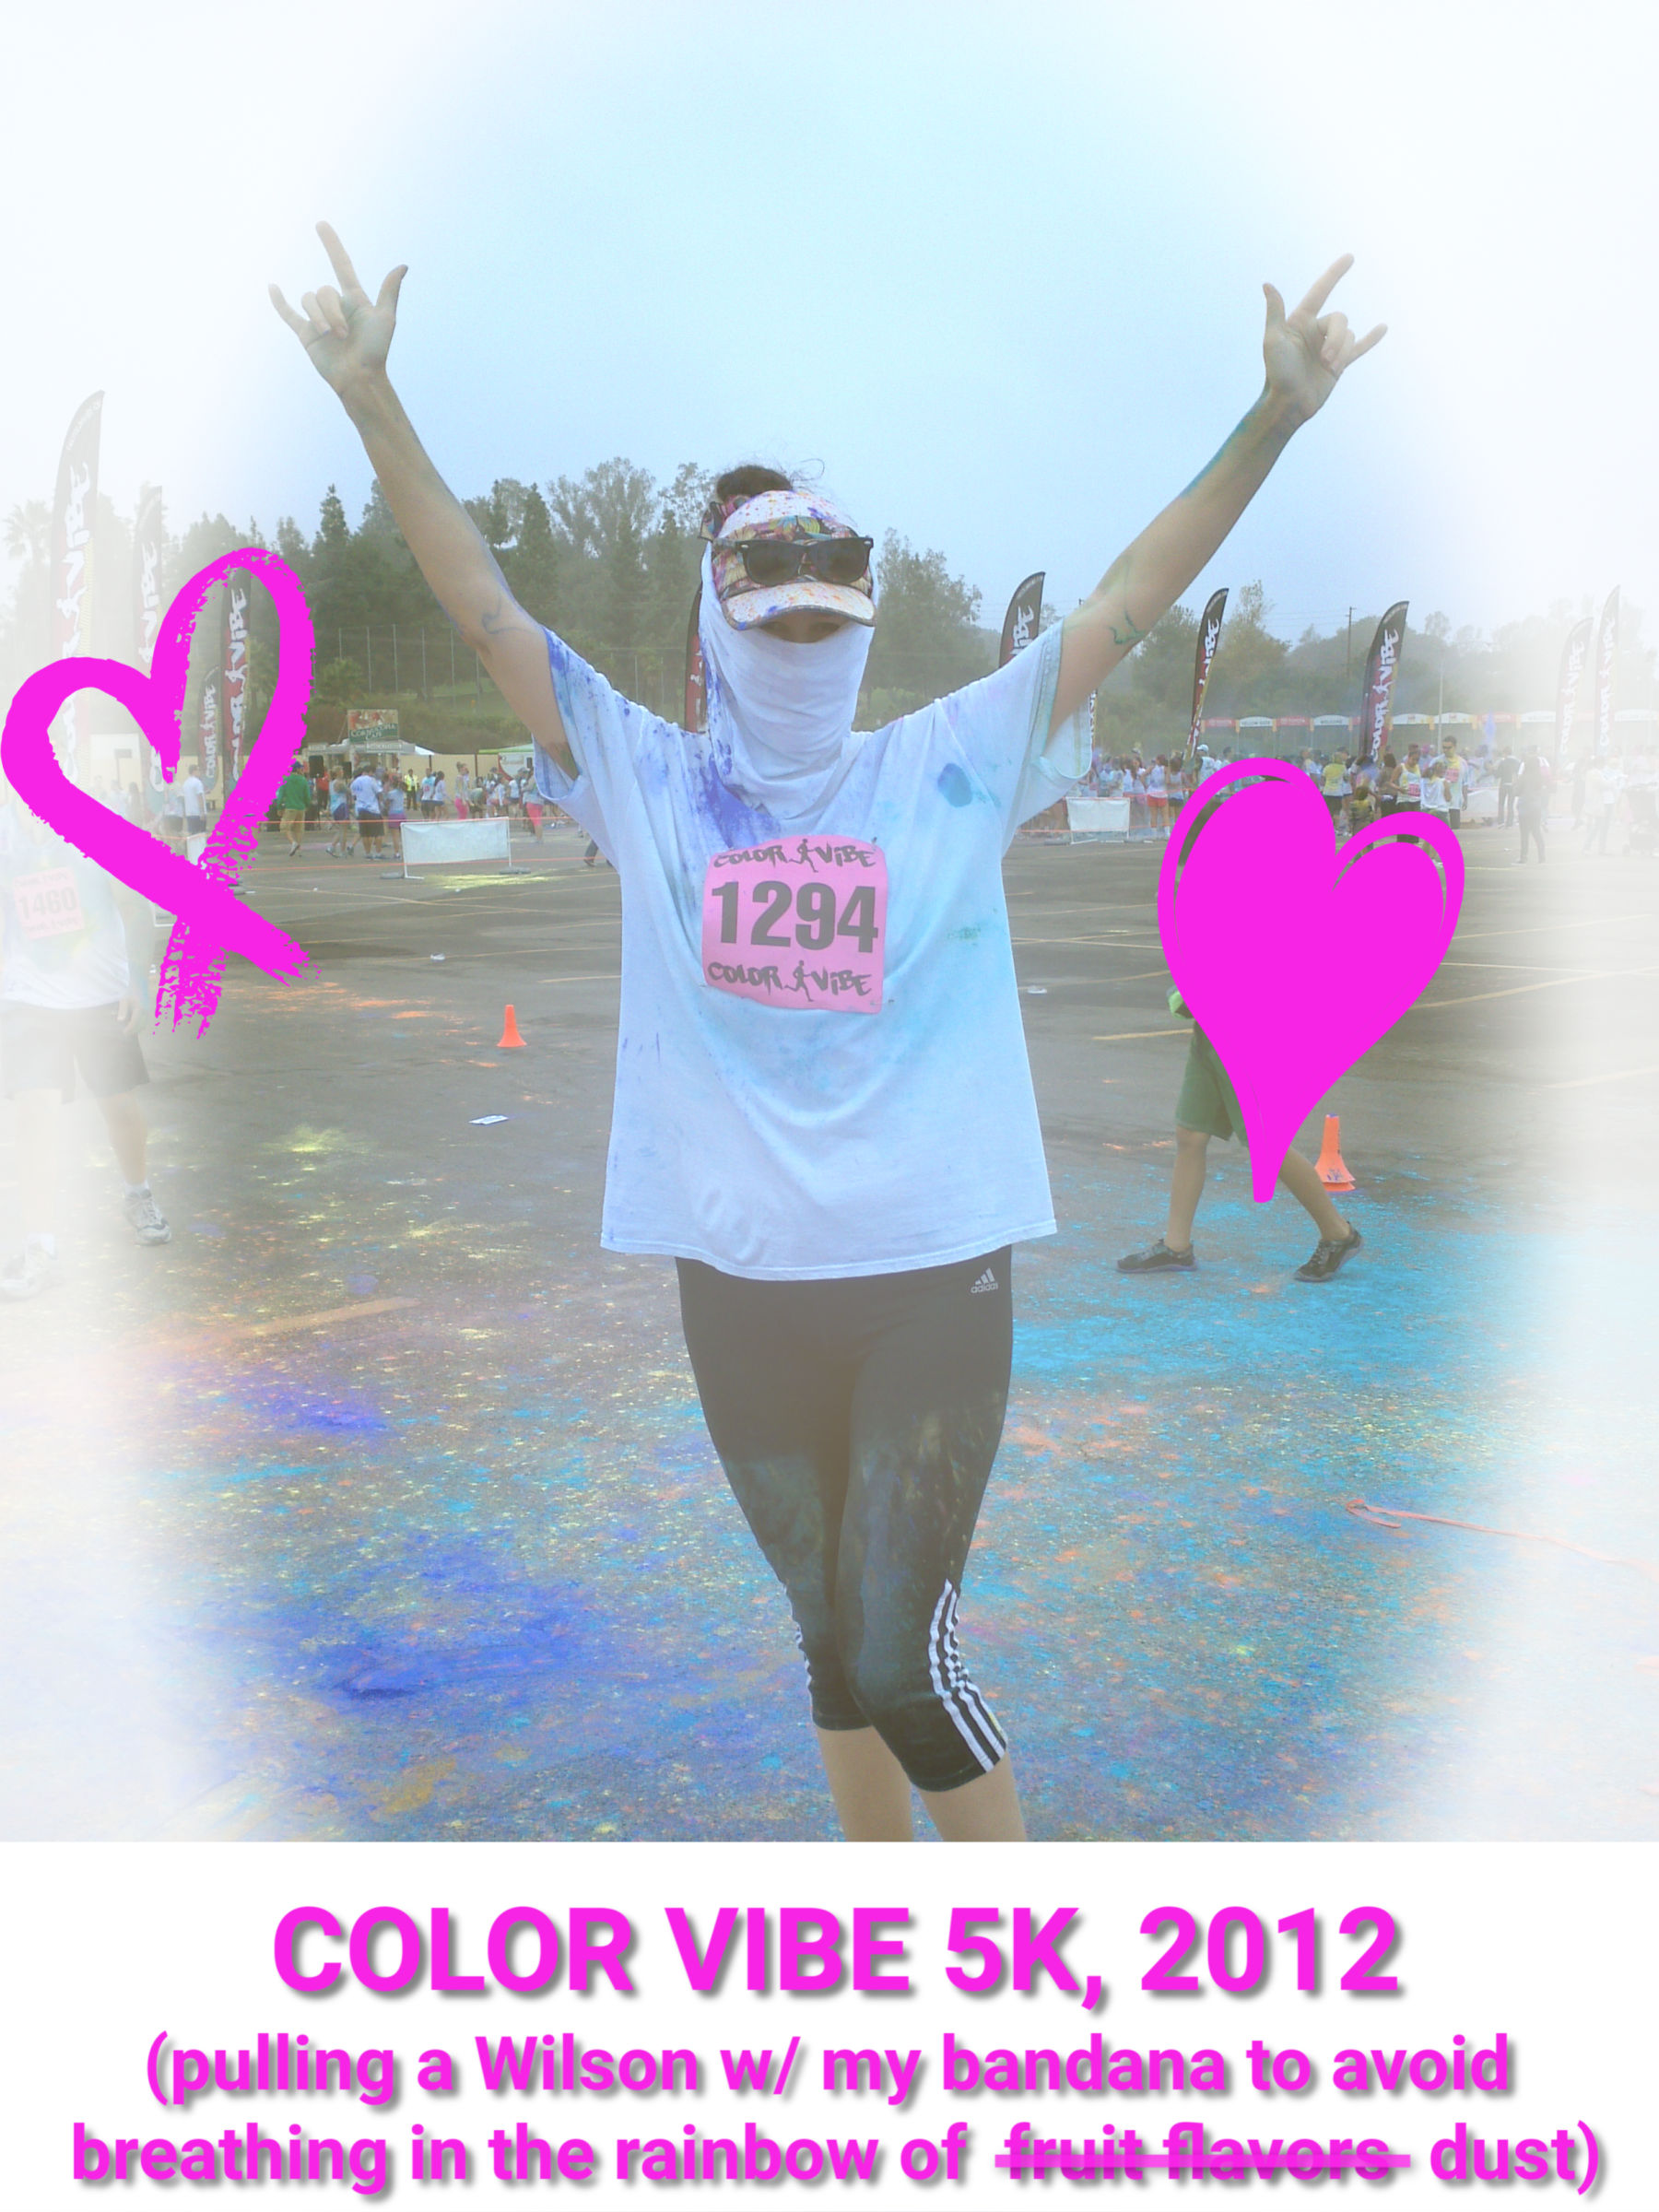 trish at color vibe run